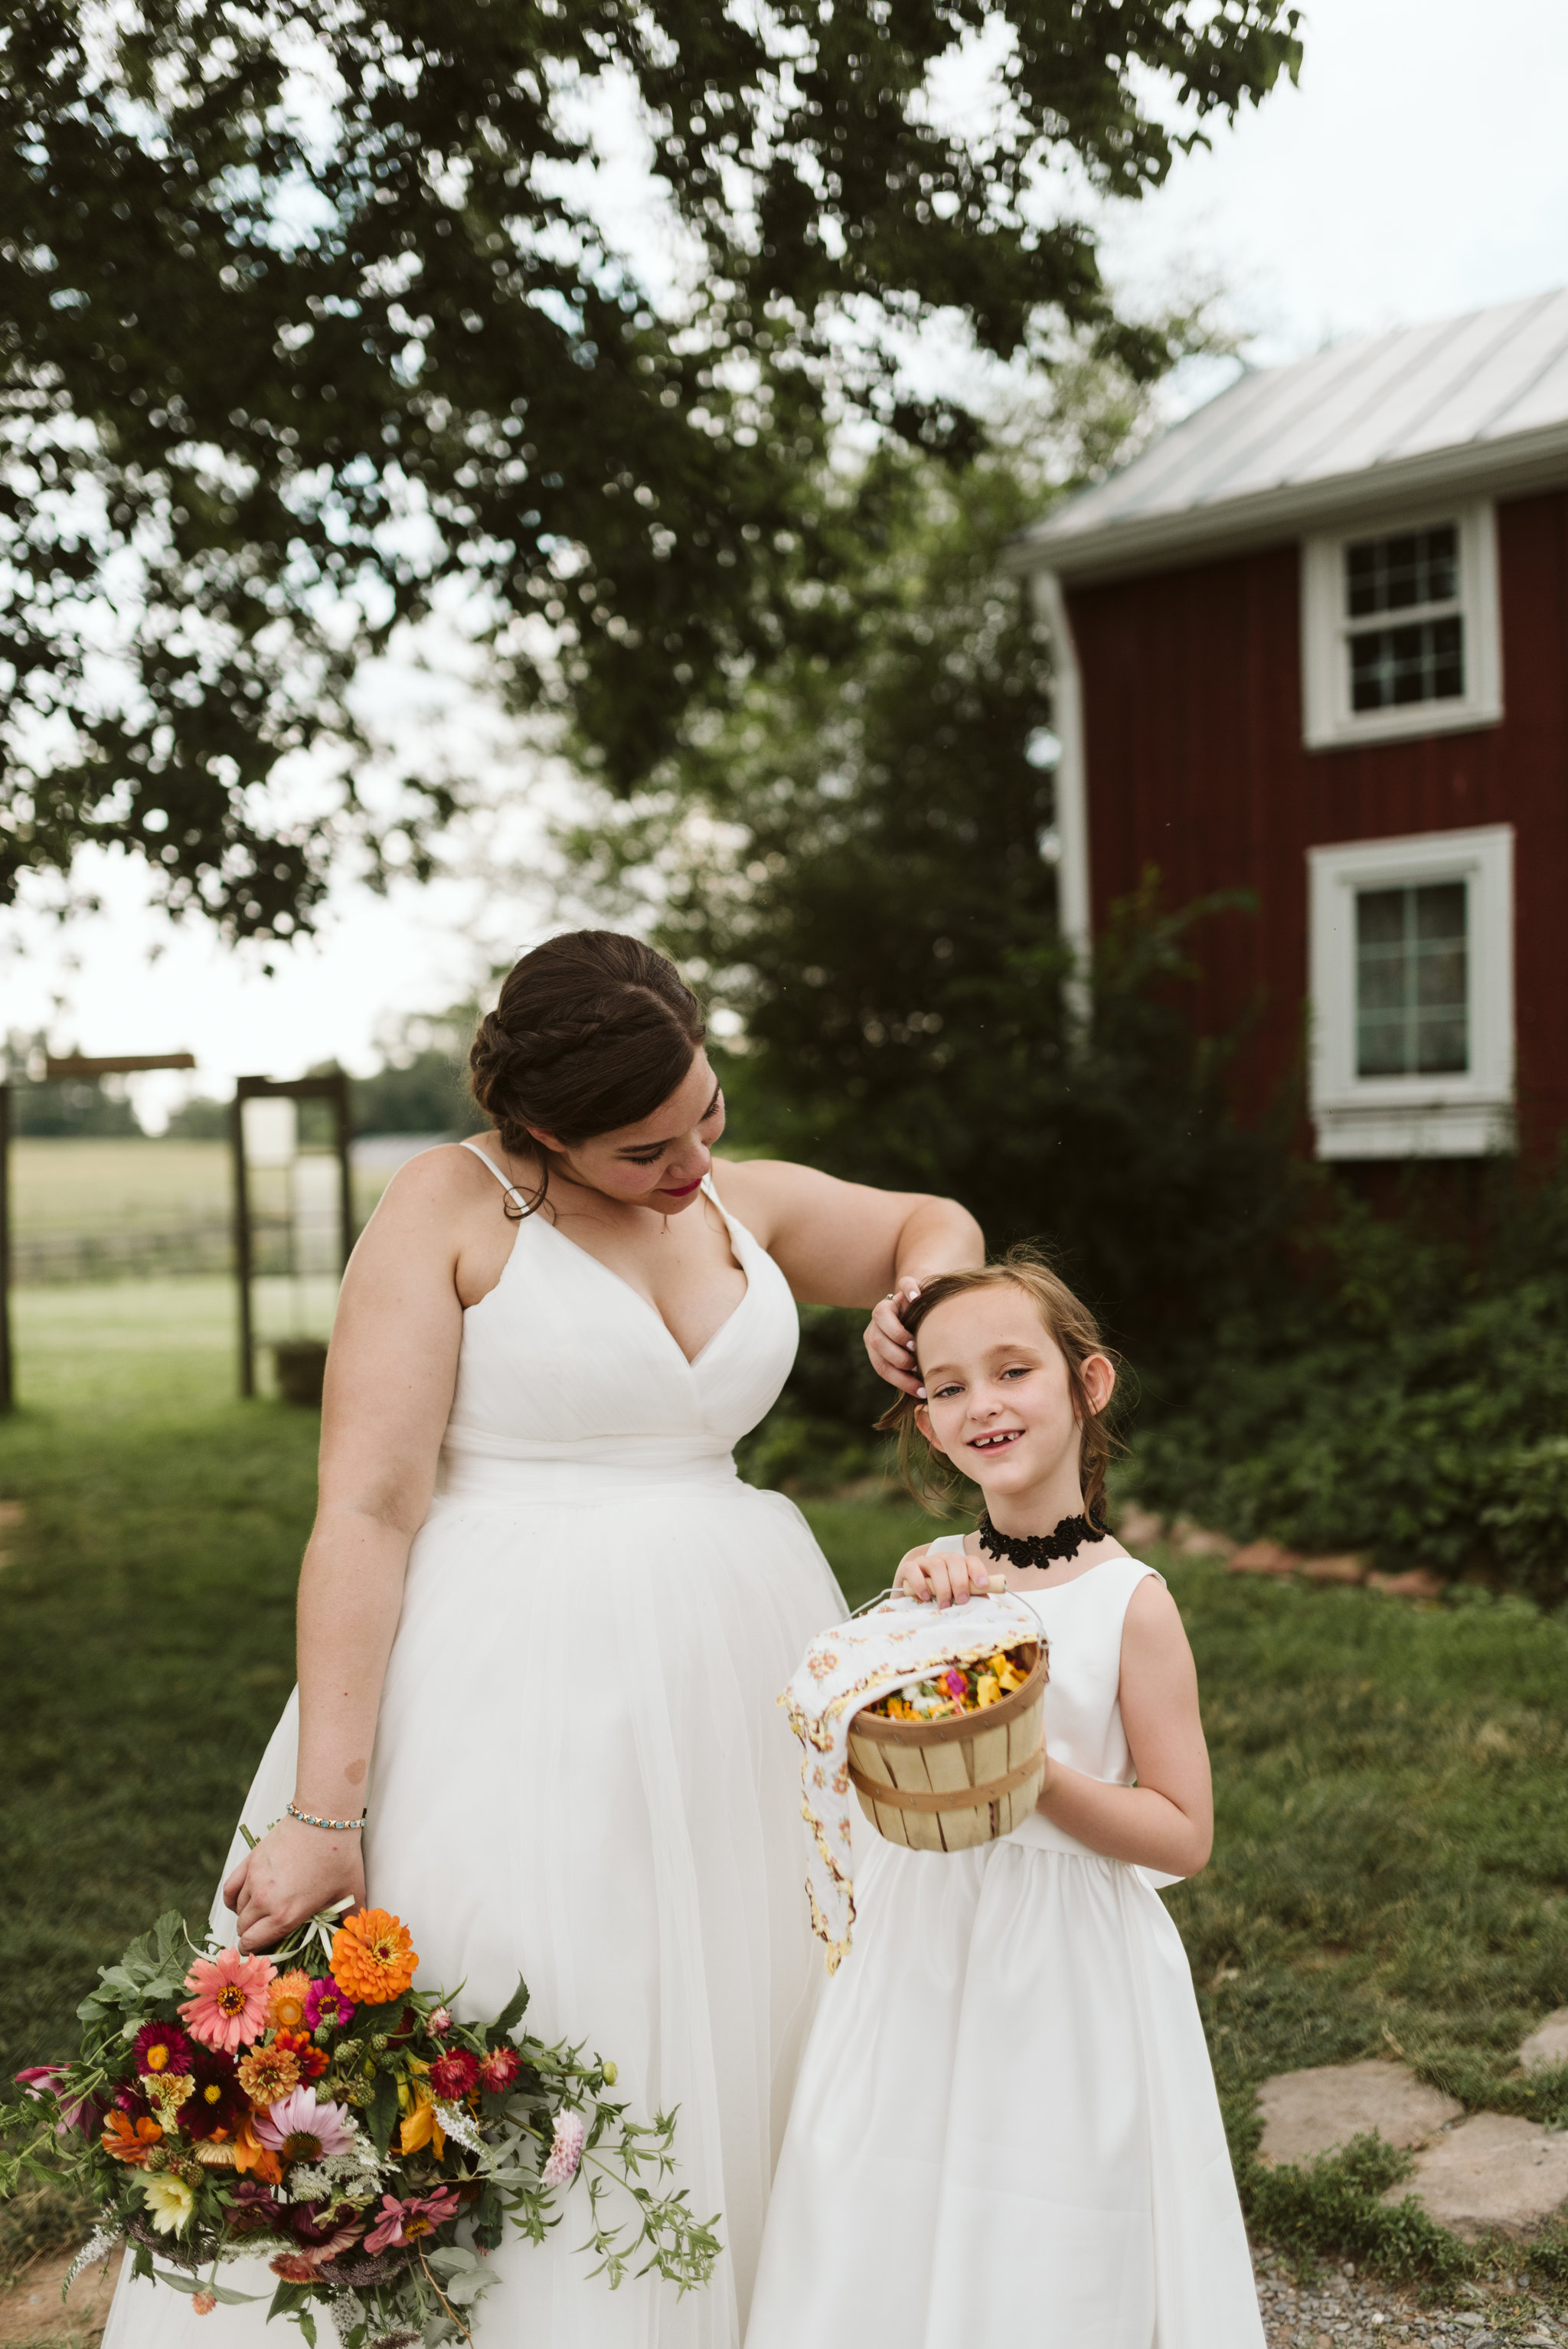 Rocklands Farm, Maryland, Intimate Wedding, Baltimore Wedding Photographer, Sungold Flower Co, Rustic, Romantic, Barn Wedding, Bride with Flower Girl Before Ceremony